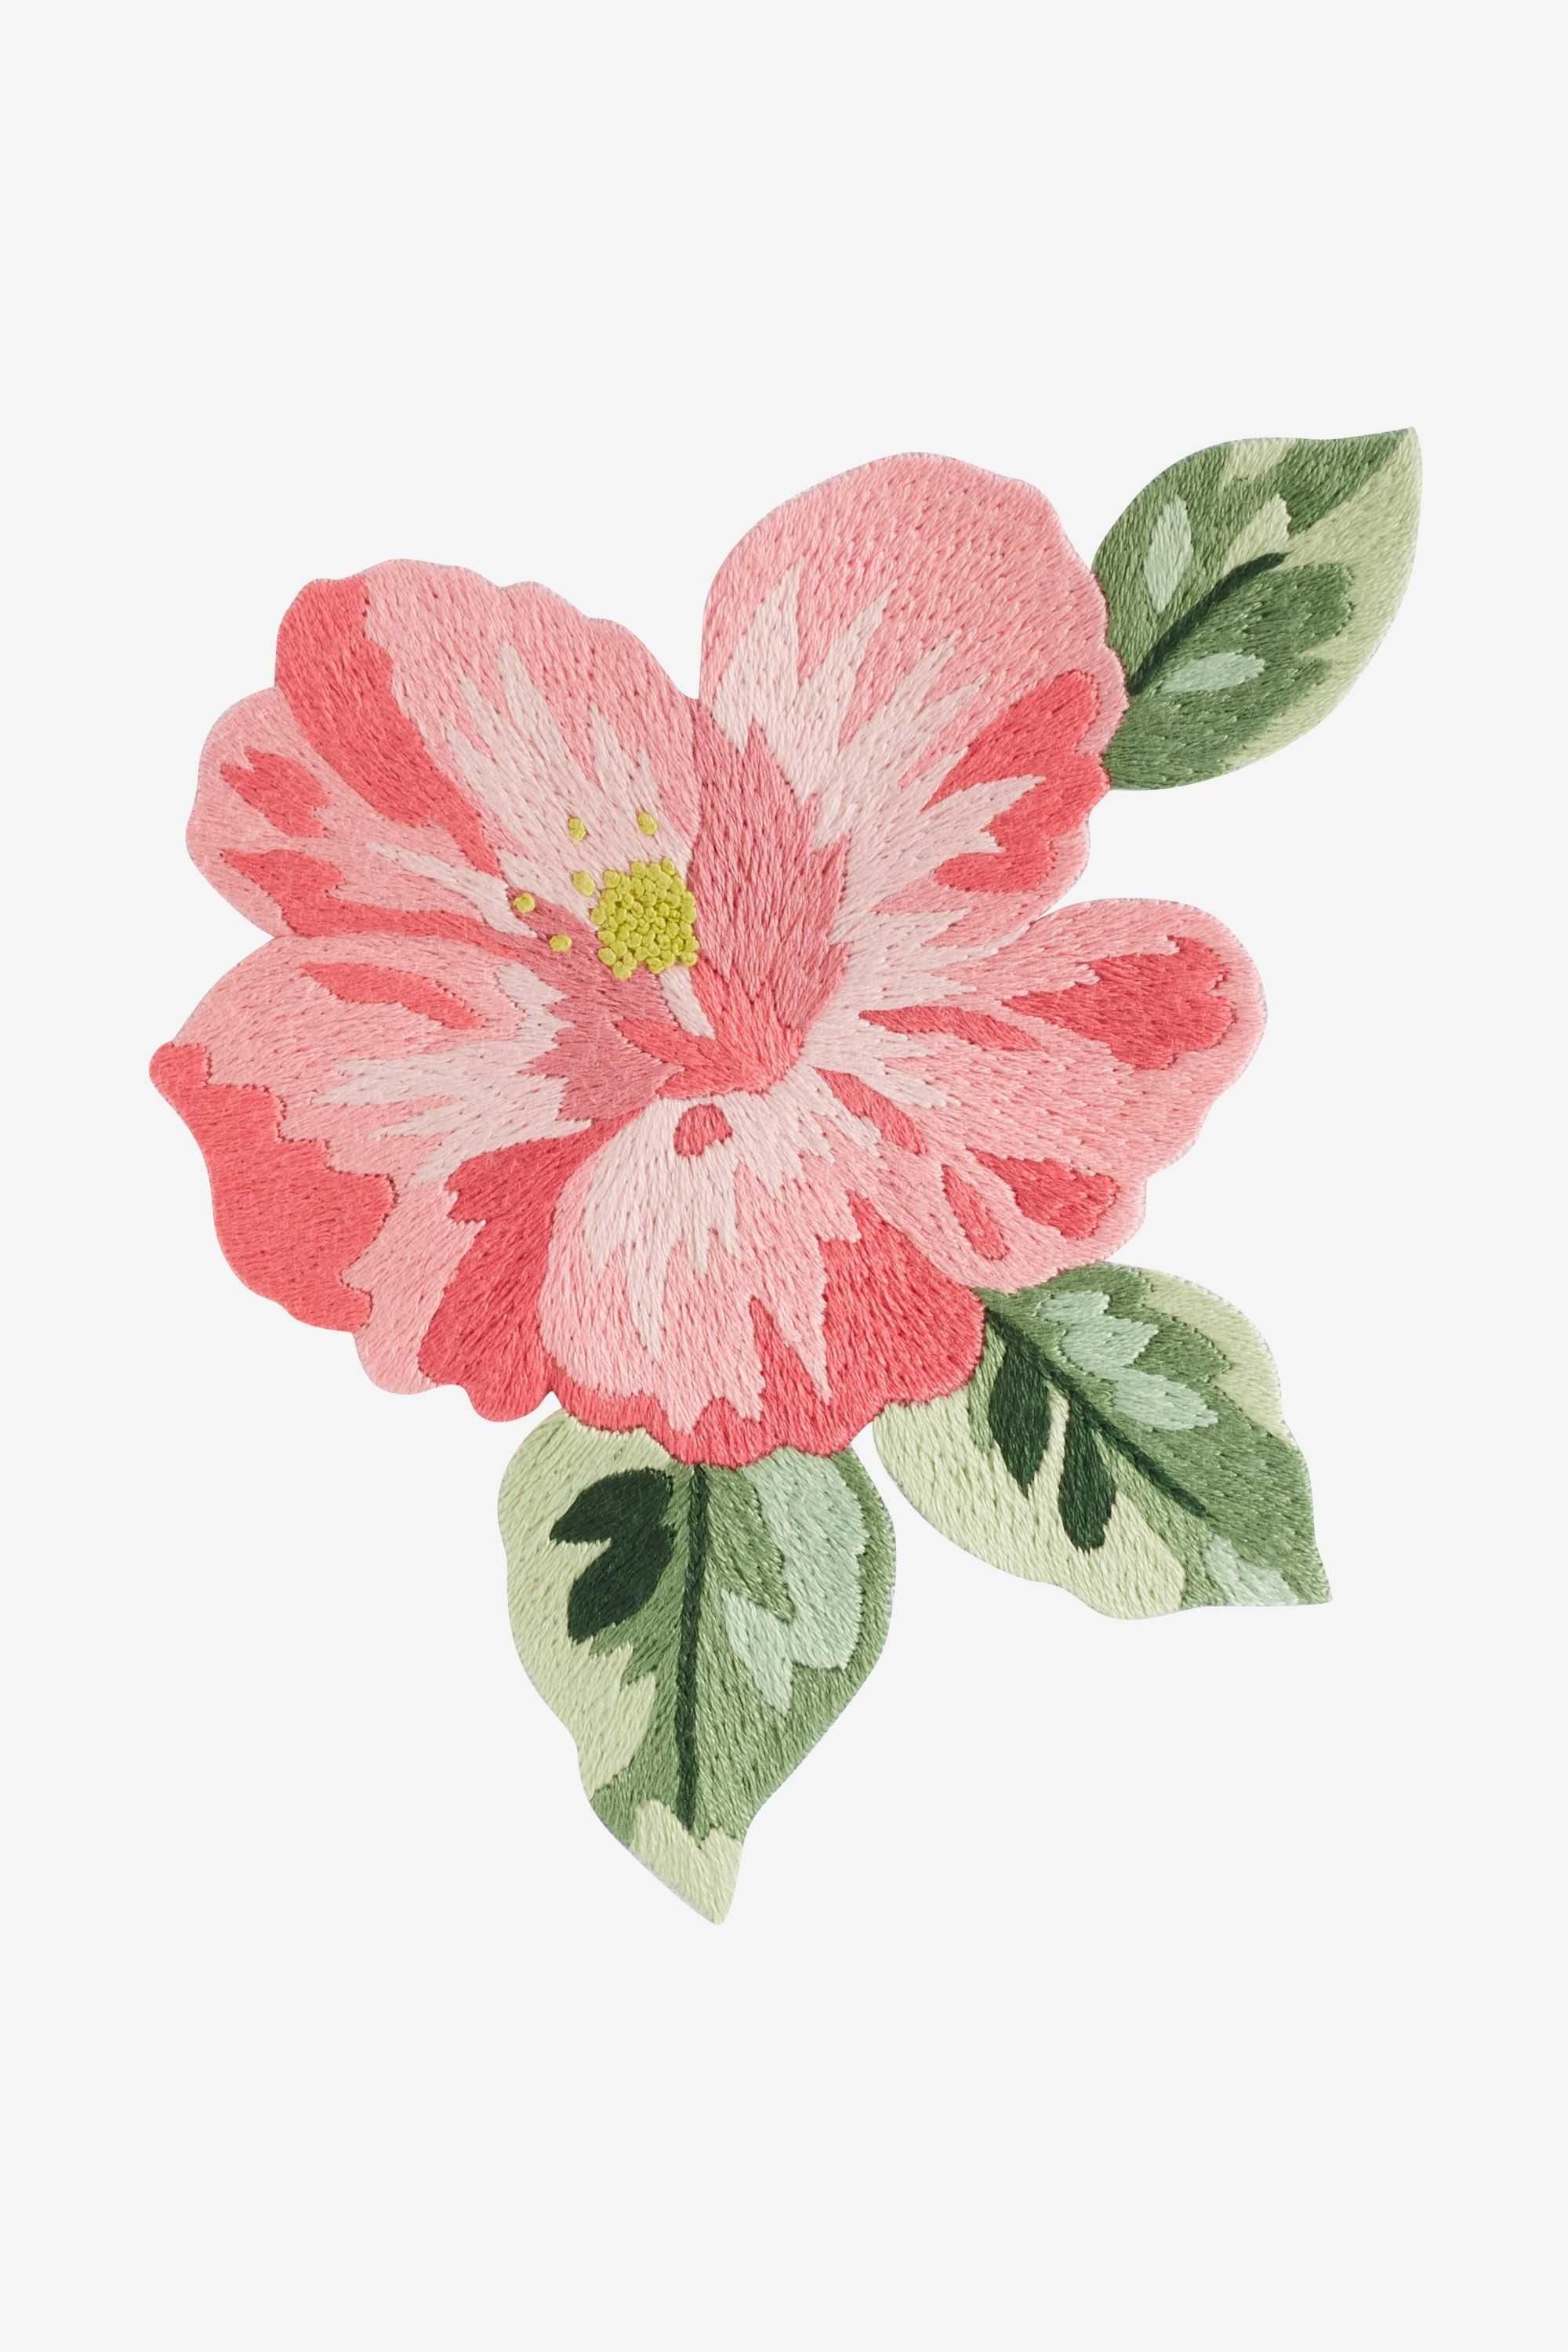 Fleur Hawaienne Motif Broderie Intermediaire Embroidery Flowers Hibiscus Drawing Embroidery Patterns Free